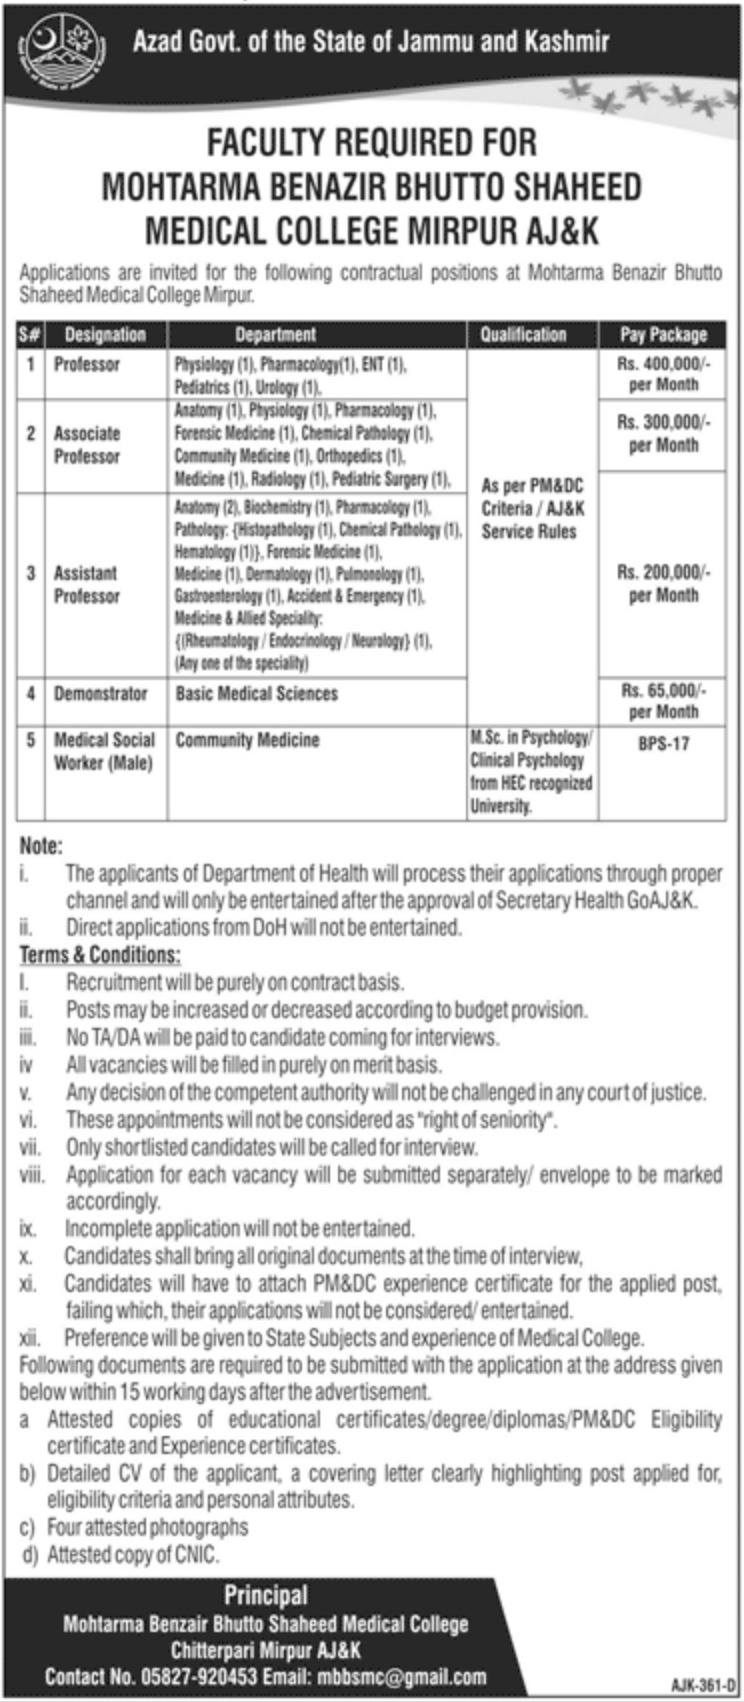 Mohtarma Benazir Bhutto Shaheed Medical College Mirpur AJK Jobs 2020